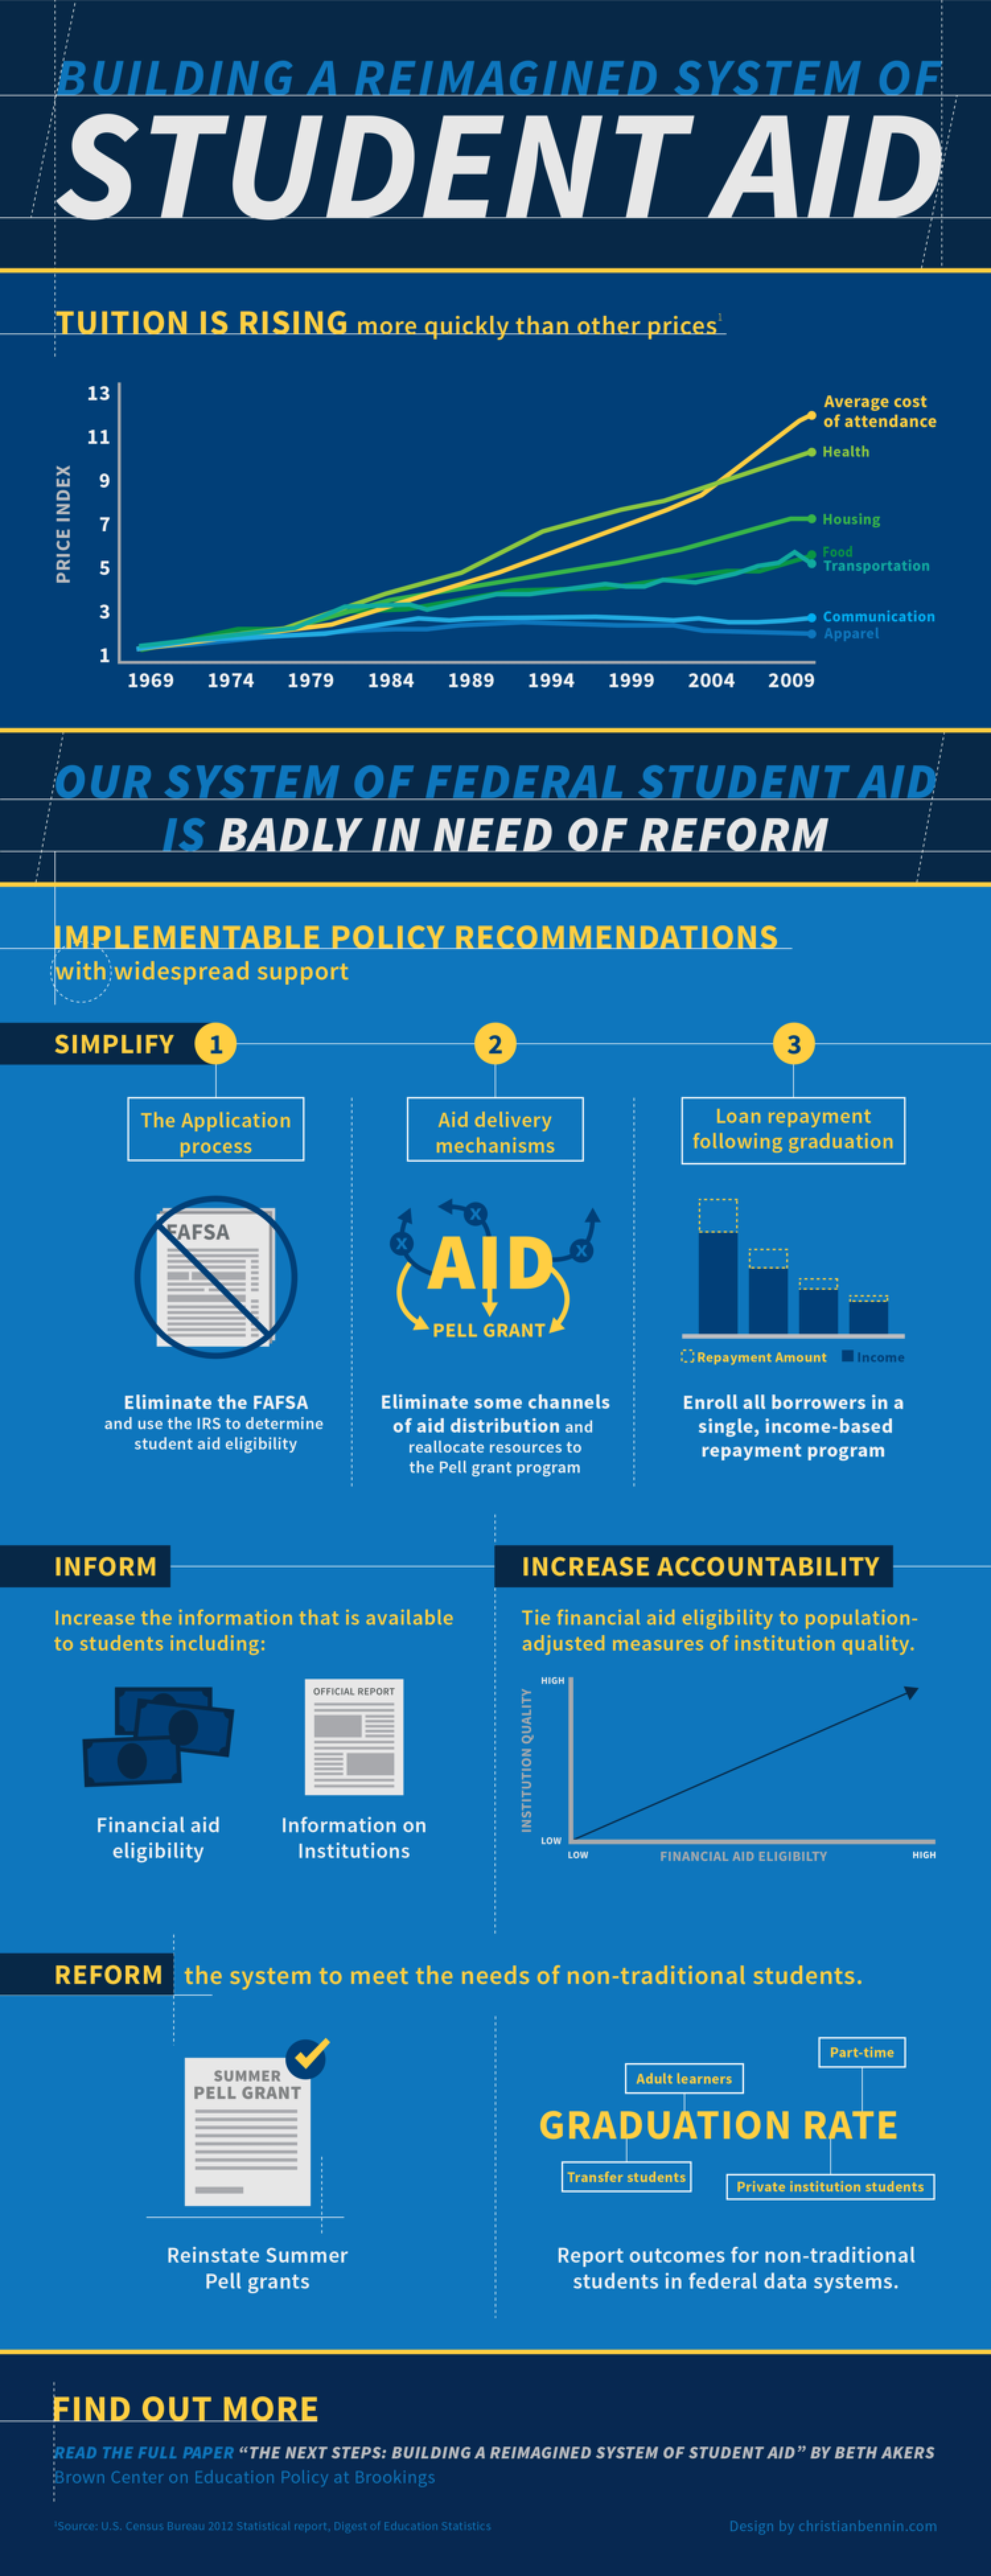 Building a Reimagined System of Student Aid Infographic